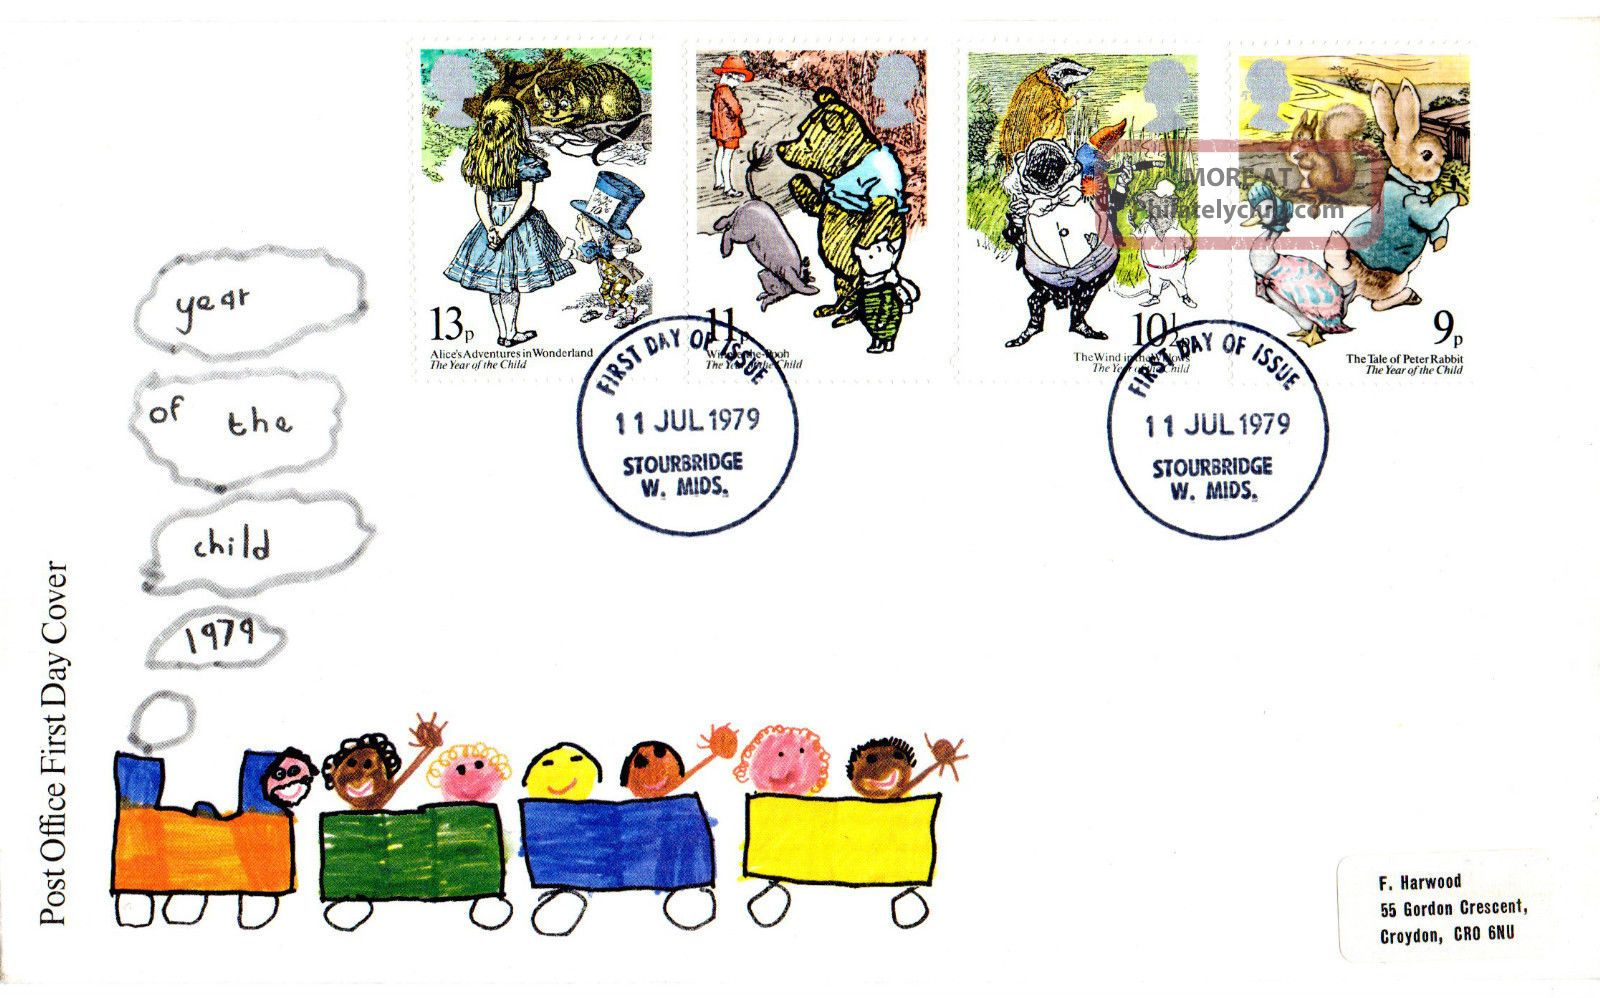 11 July 1979 International Year Of The Child Po Fdc Appropriate Stourbridge Cds Topical Stamps photo